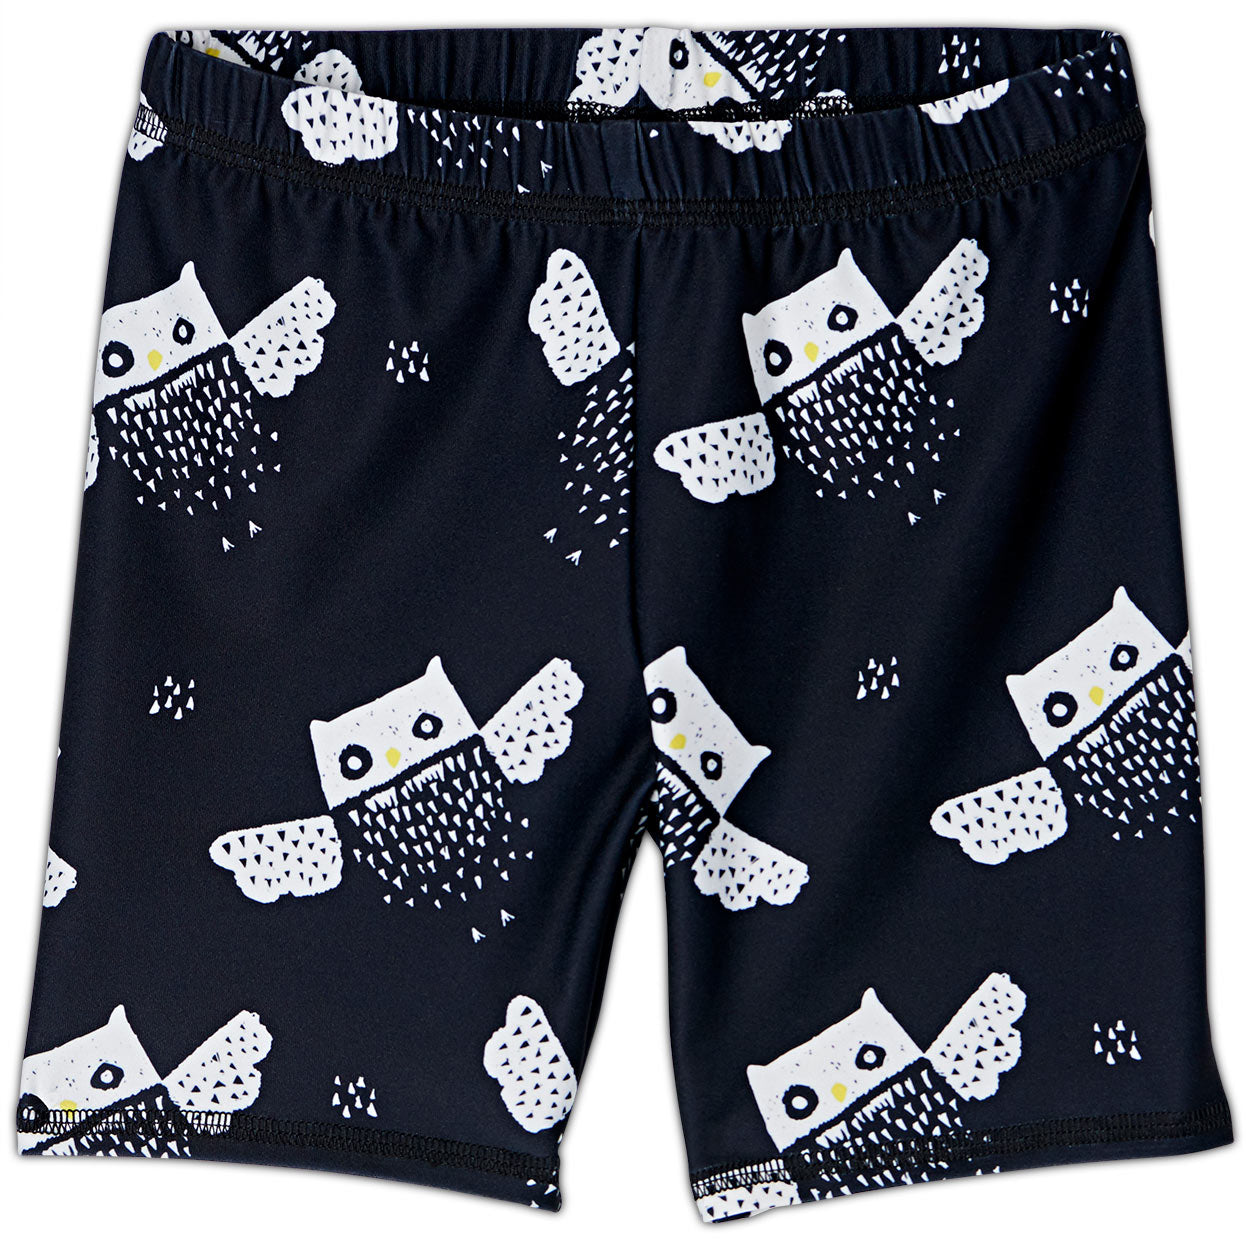 Owls Sunblocker Shorts Upf50 Kids Boys Girls Size 2 12 Black White Unisex Sunpoplife